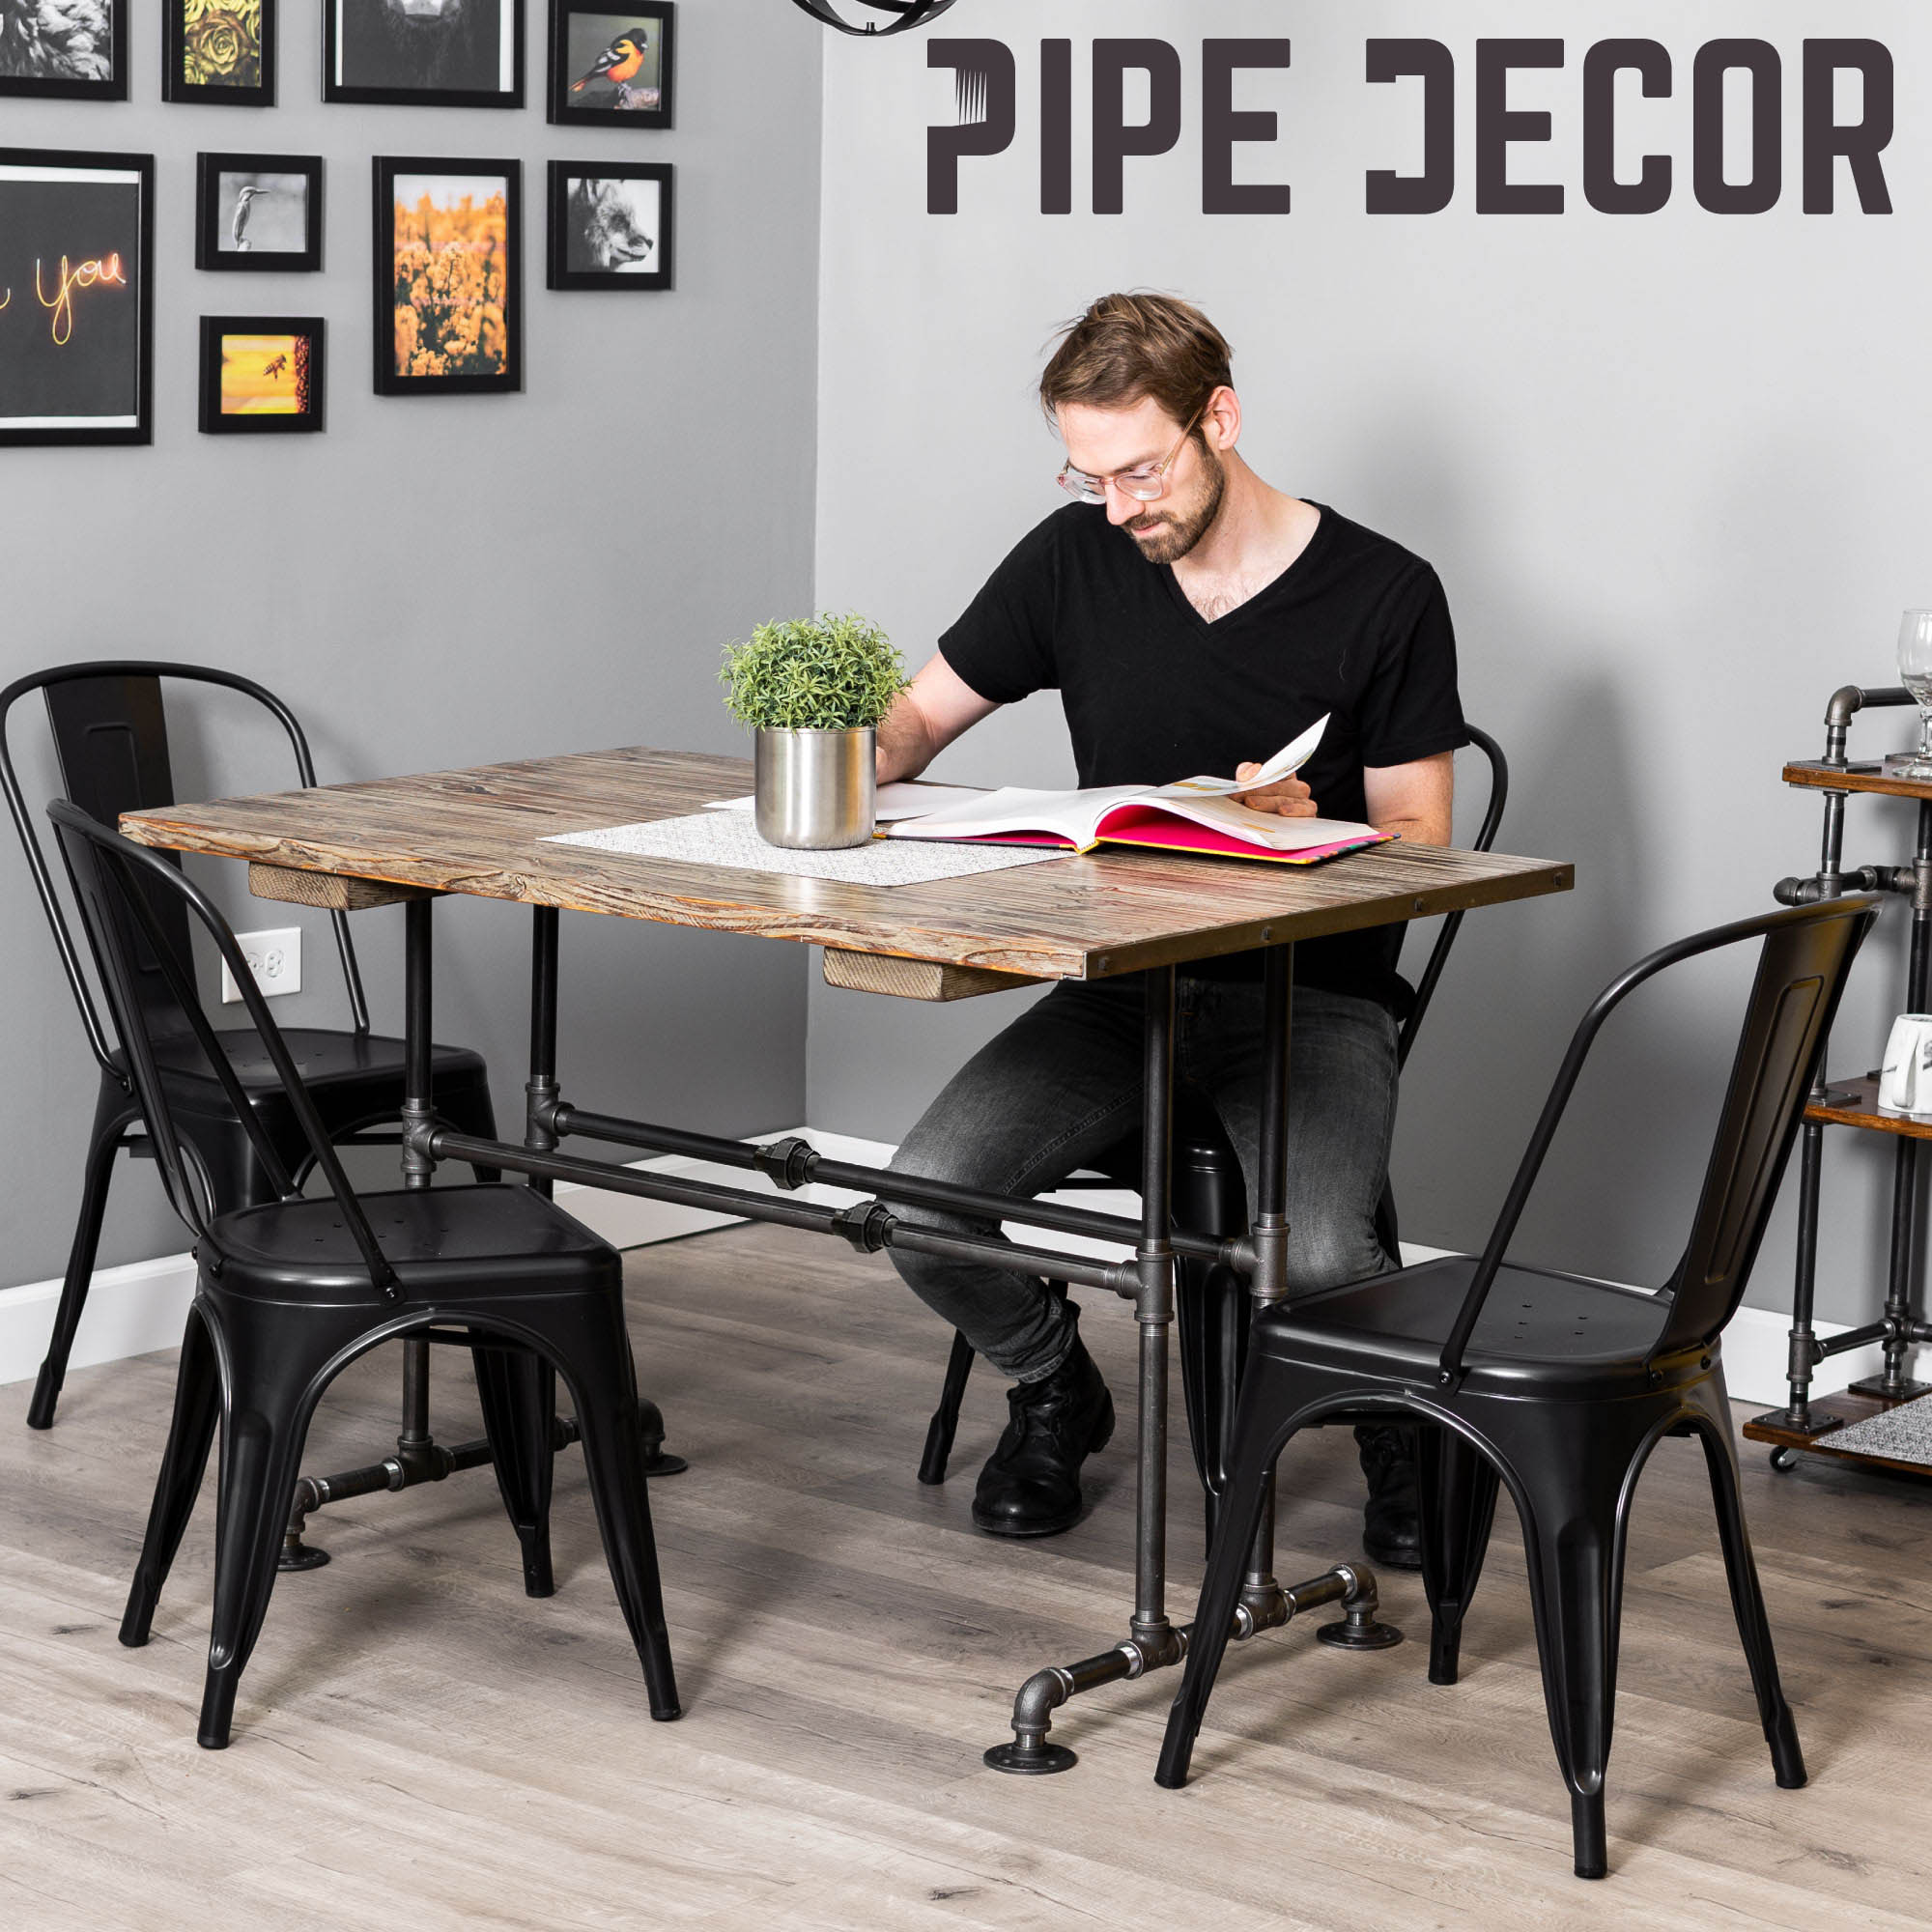 Bridge Kitchen Table By PIPE DECOR - Pipe Decor